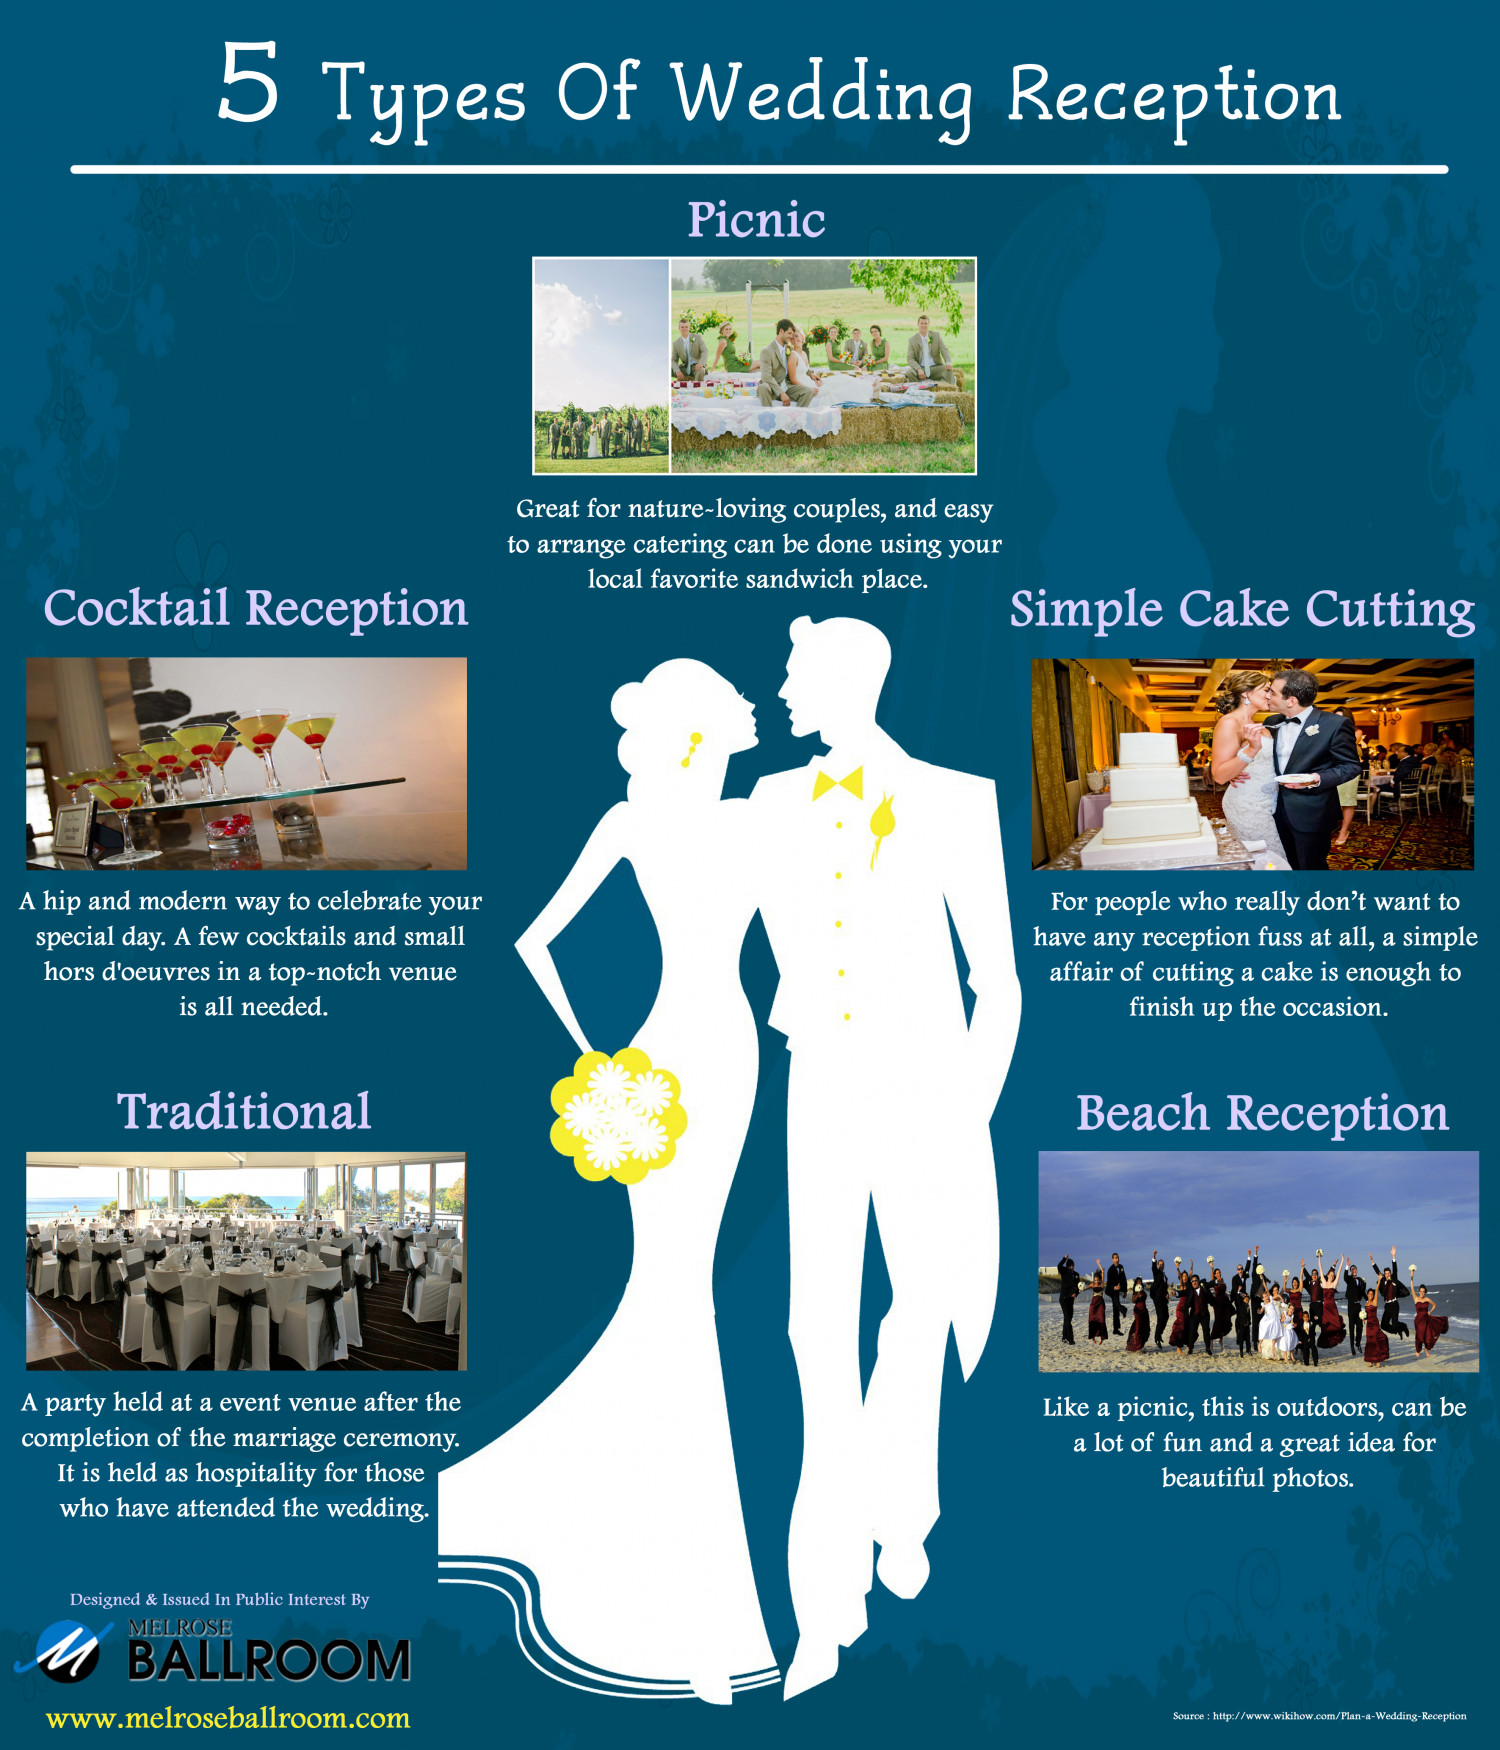 5 Types Of Wedding Reception Infographic